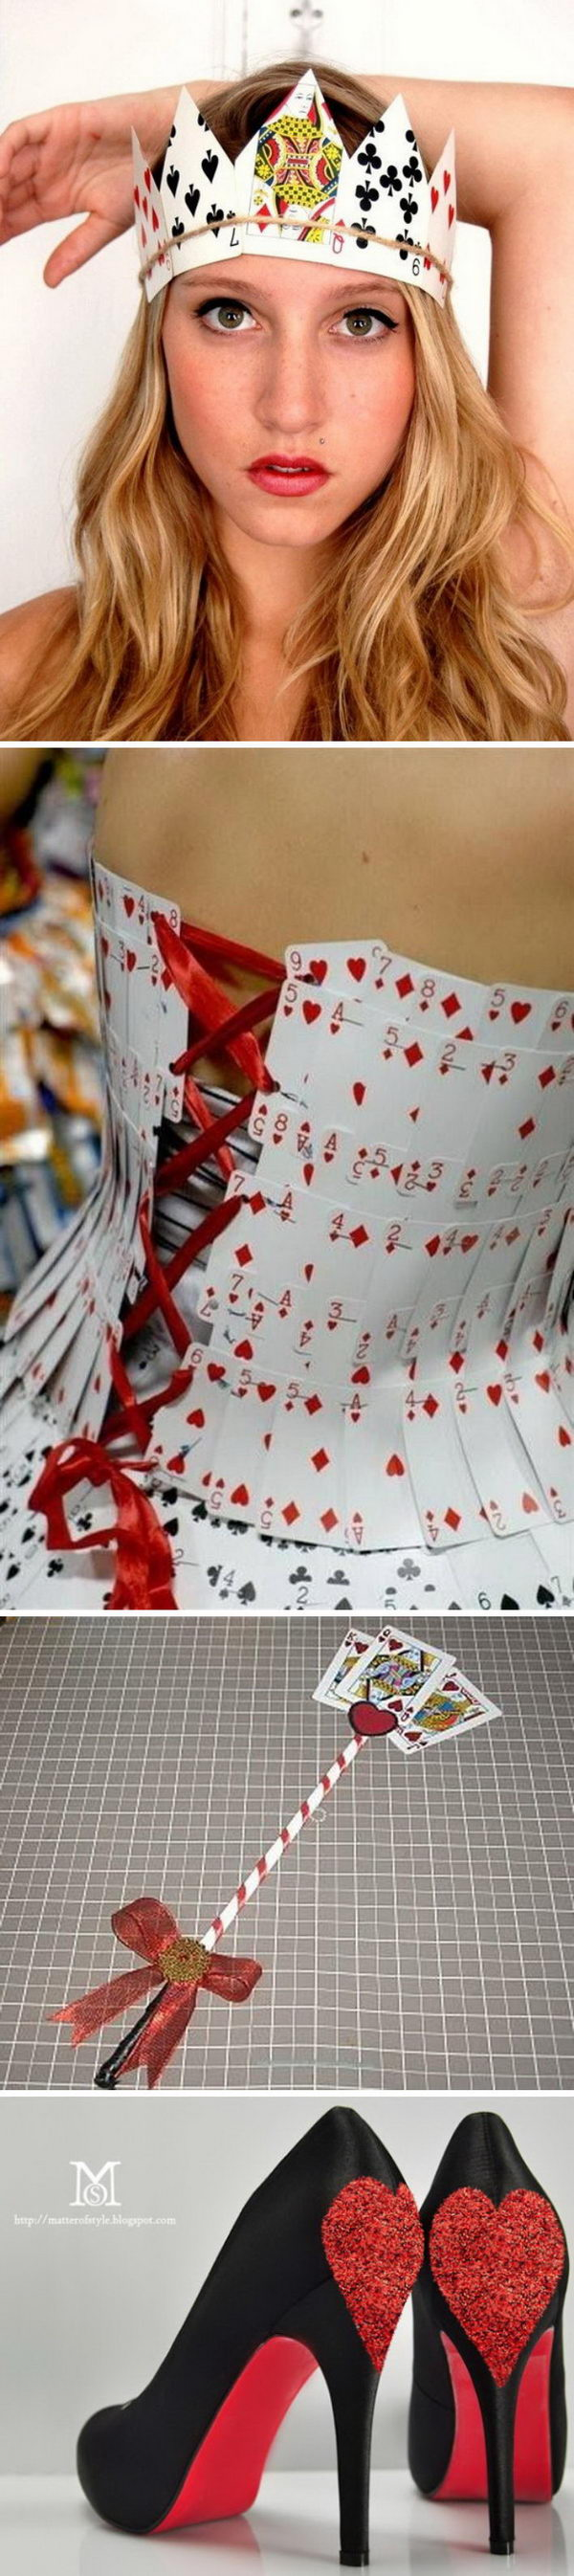 Queen of Hearts Costume Ideas and DIY Tutorials.